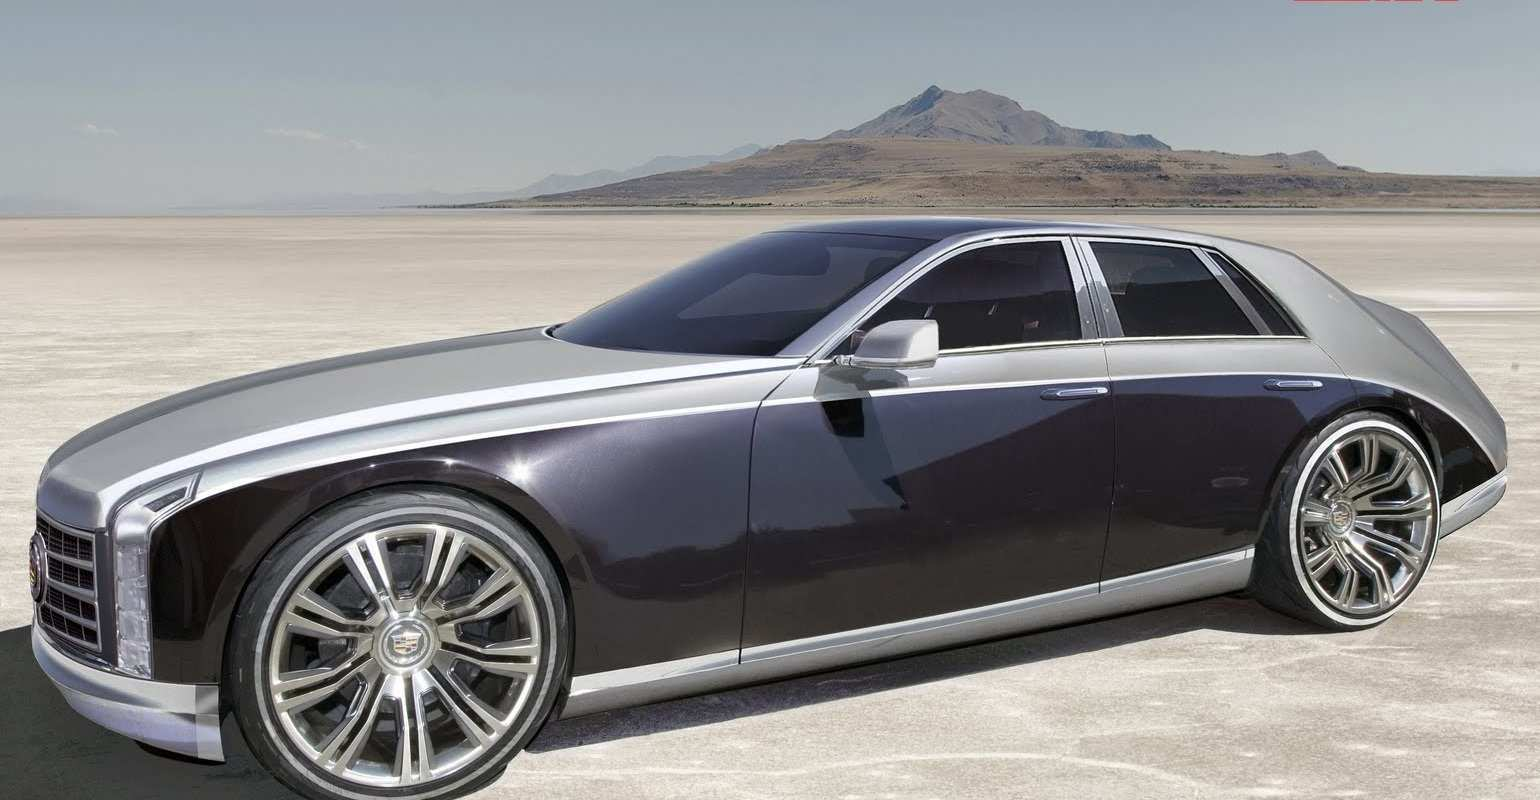 13 Great Cadillac Dts 2020 Photos with Cadillac Dts 2020